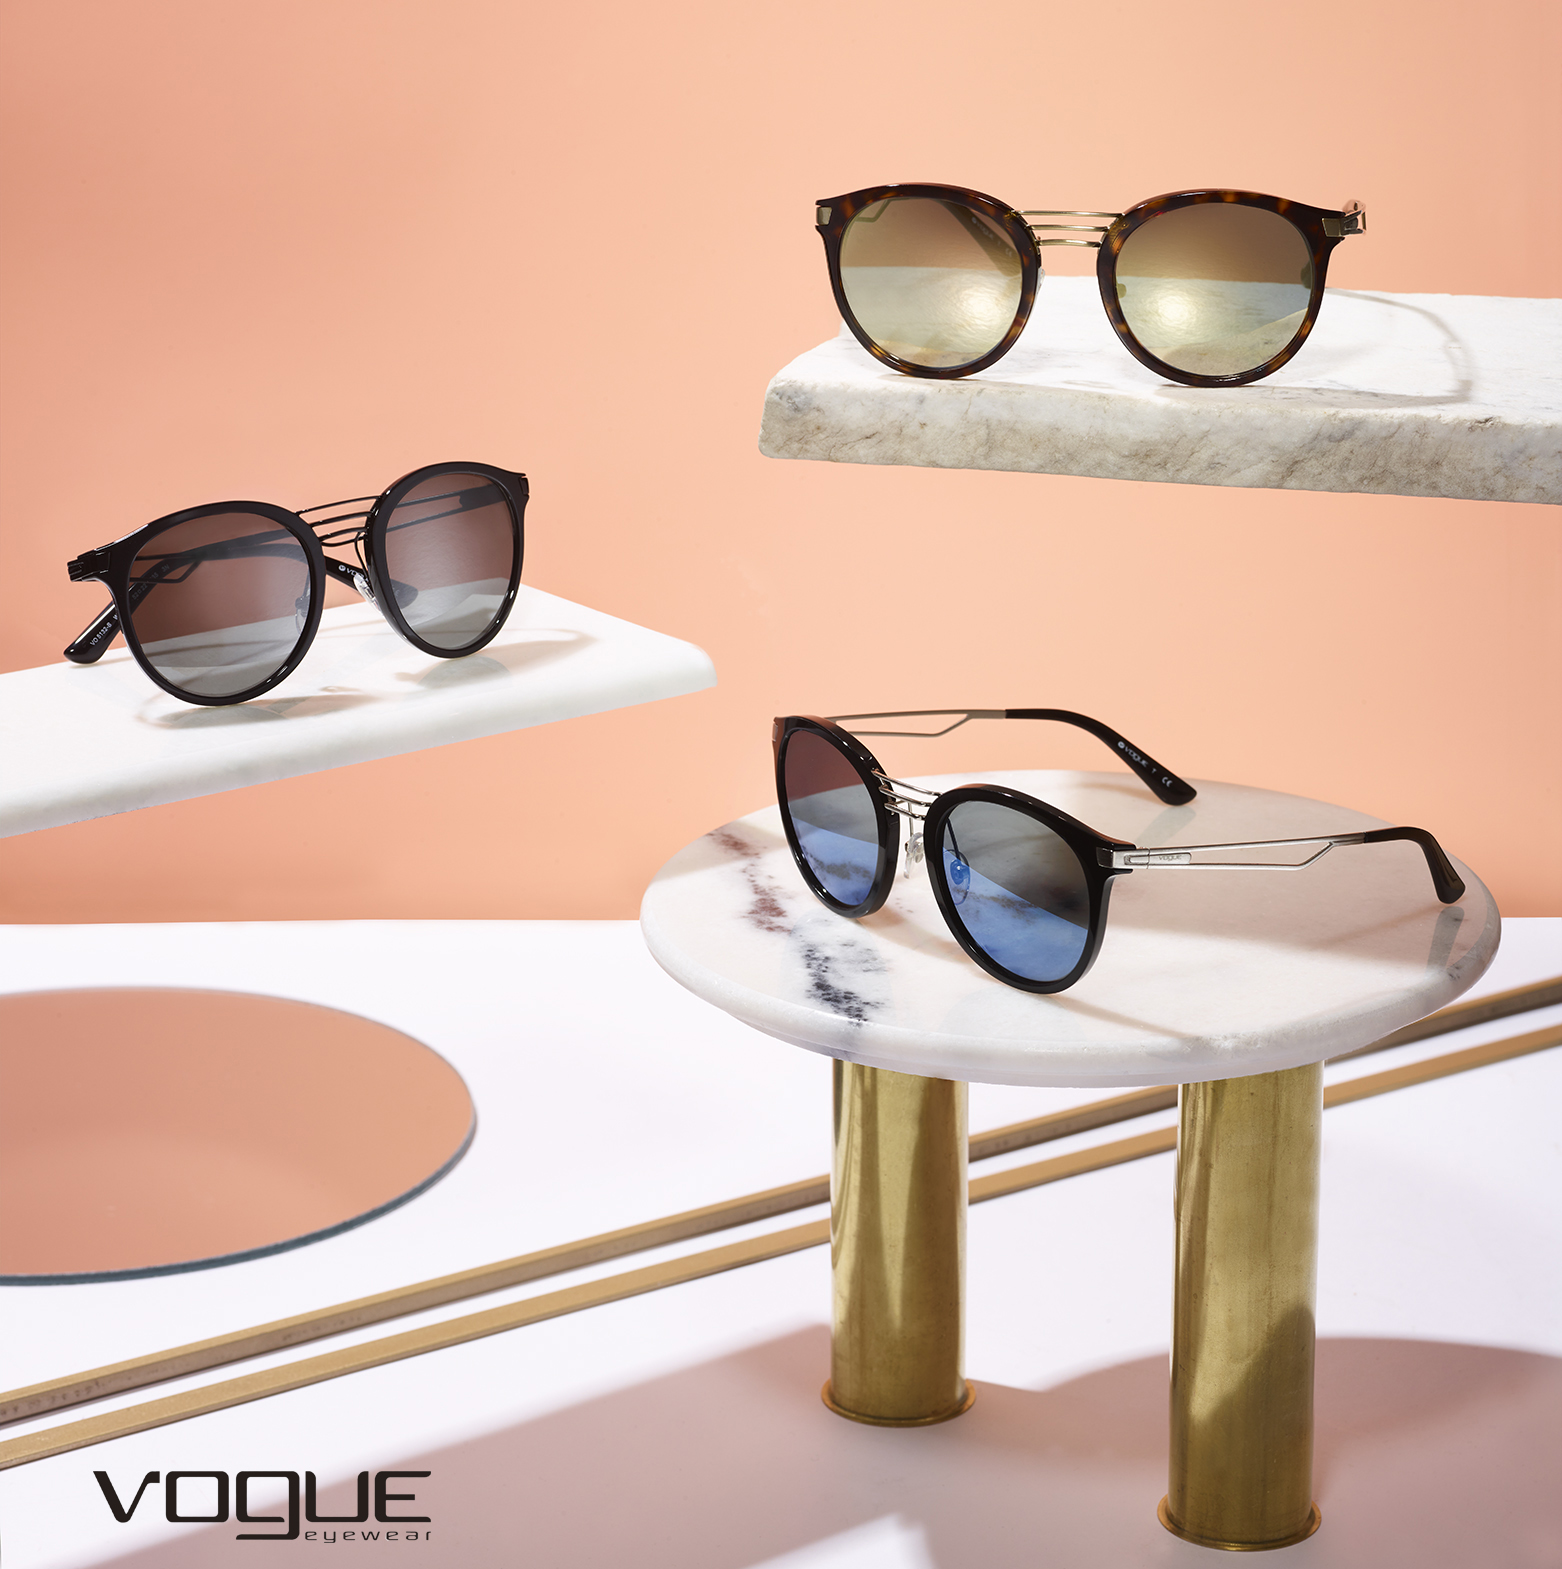 flat2016_NOV_7_VOGUE_EYEWEAR_REFINERY29_ShanaNovak_COMP3 copy